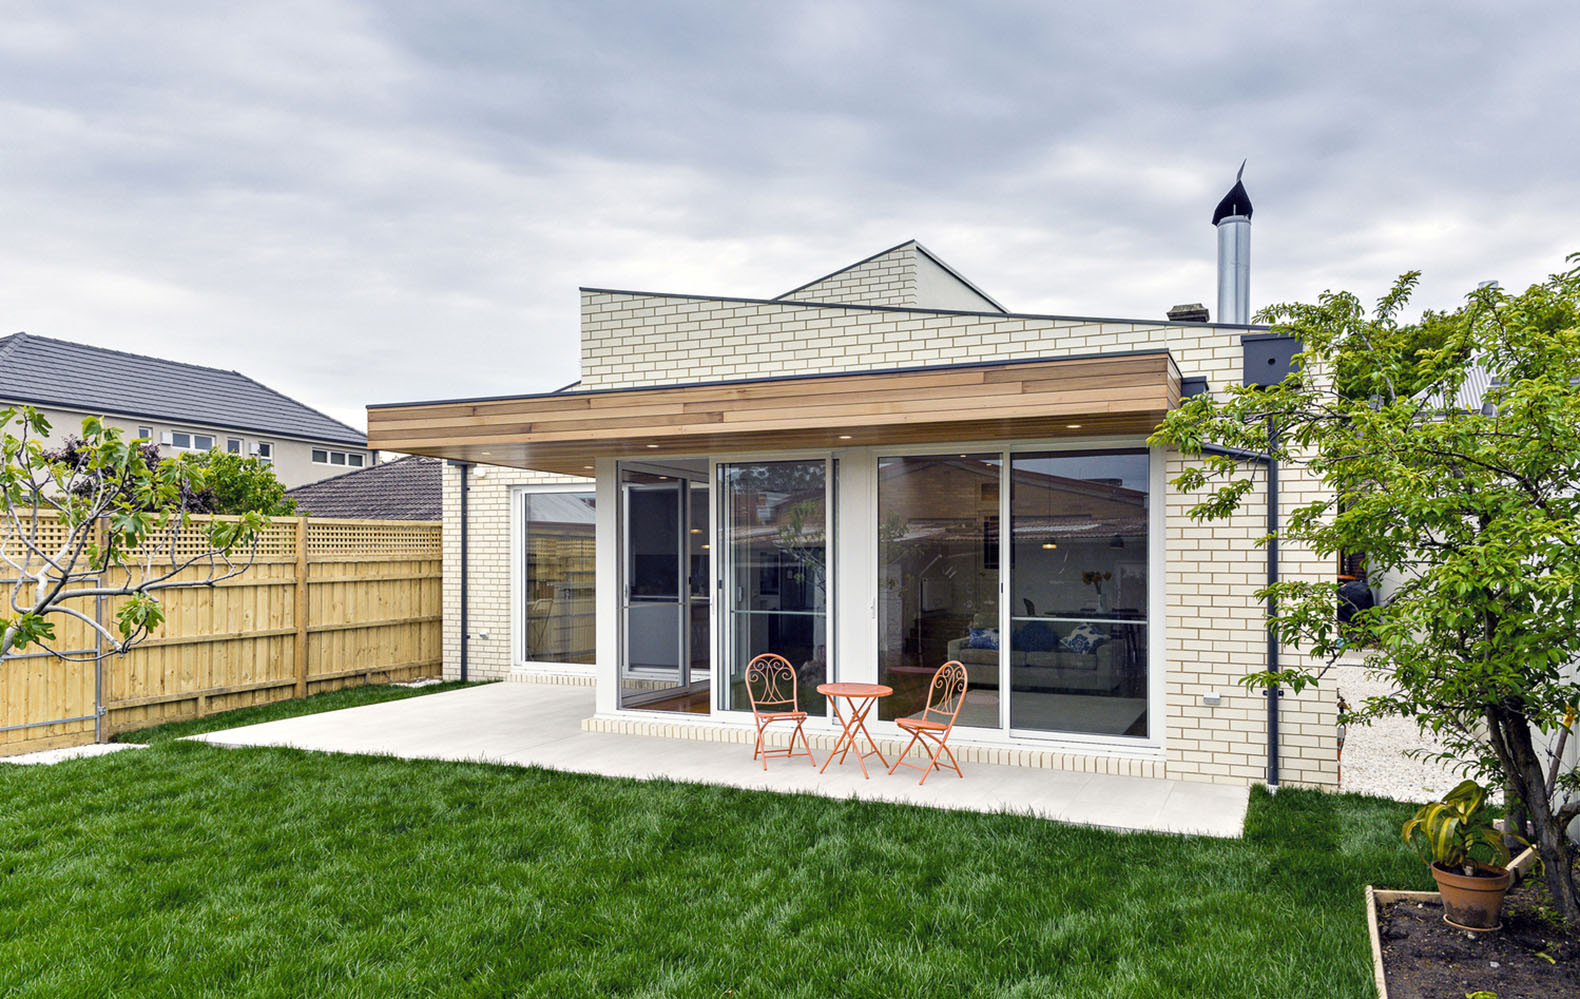 Melbourne Architects Renovate An 1880s Victorian Home For